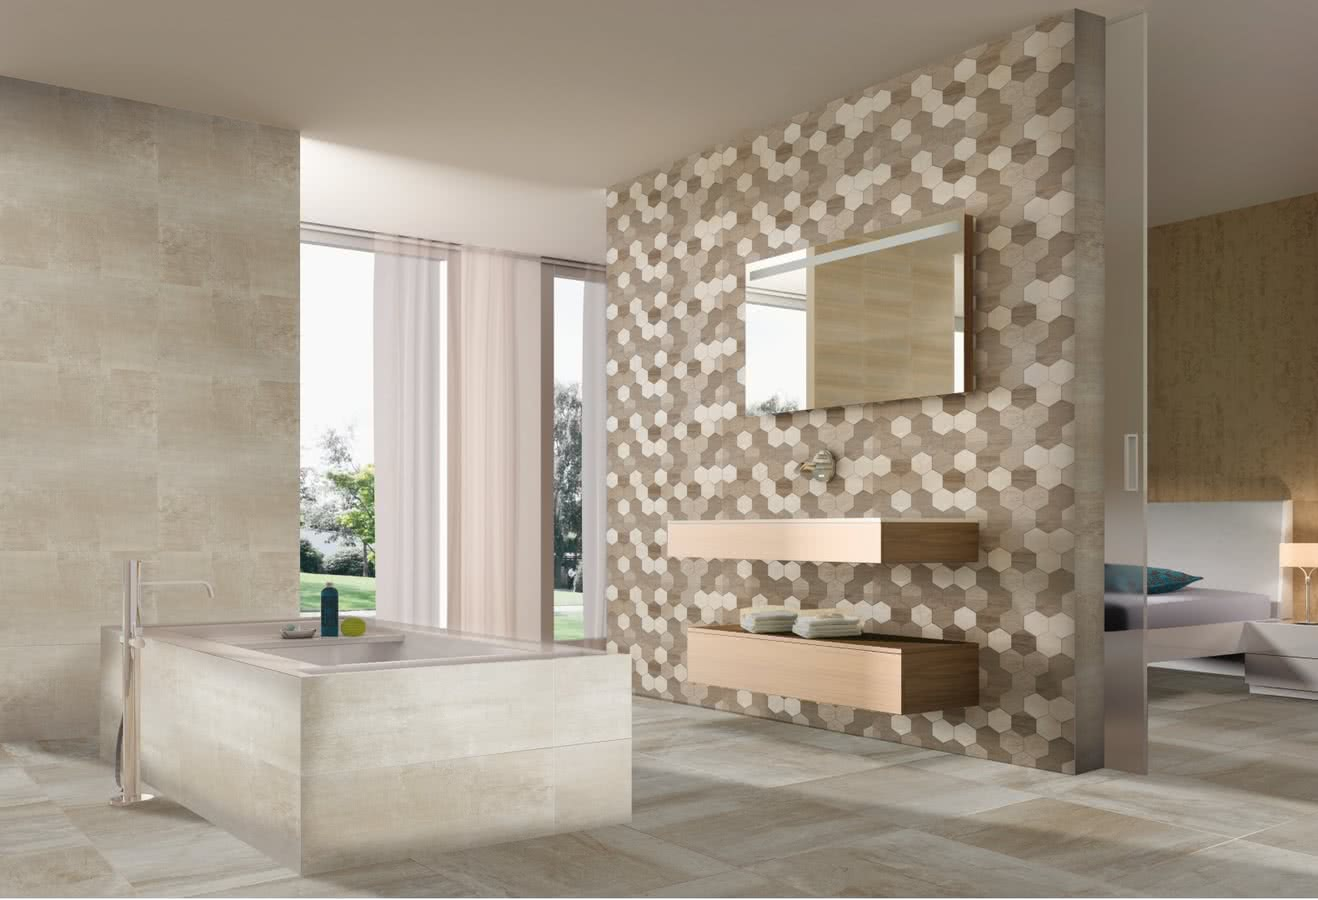 Arizona Ceramic And Porcelain Tiles By Azteca Tile Expert